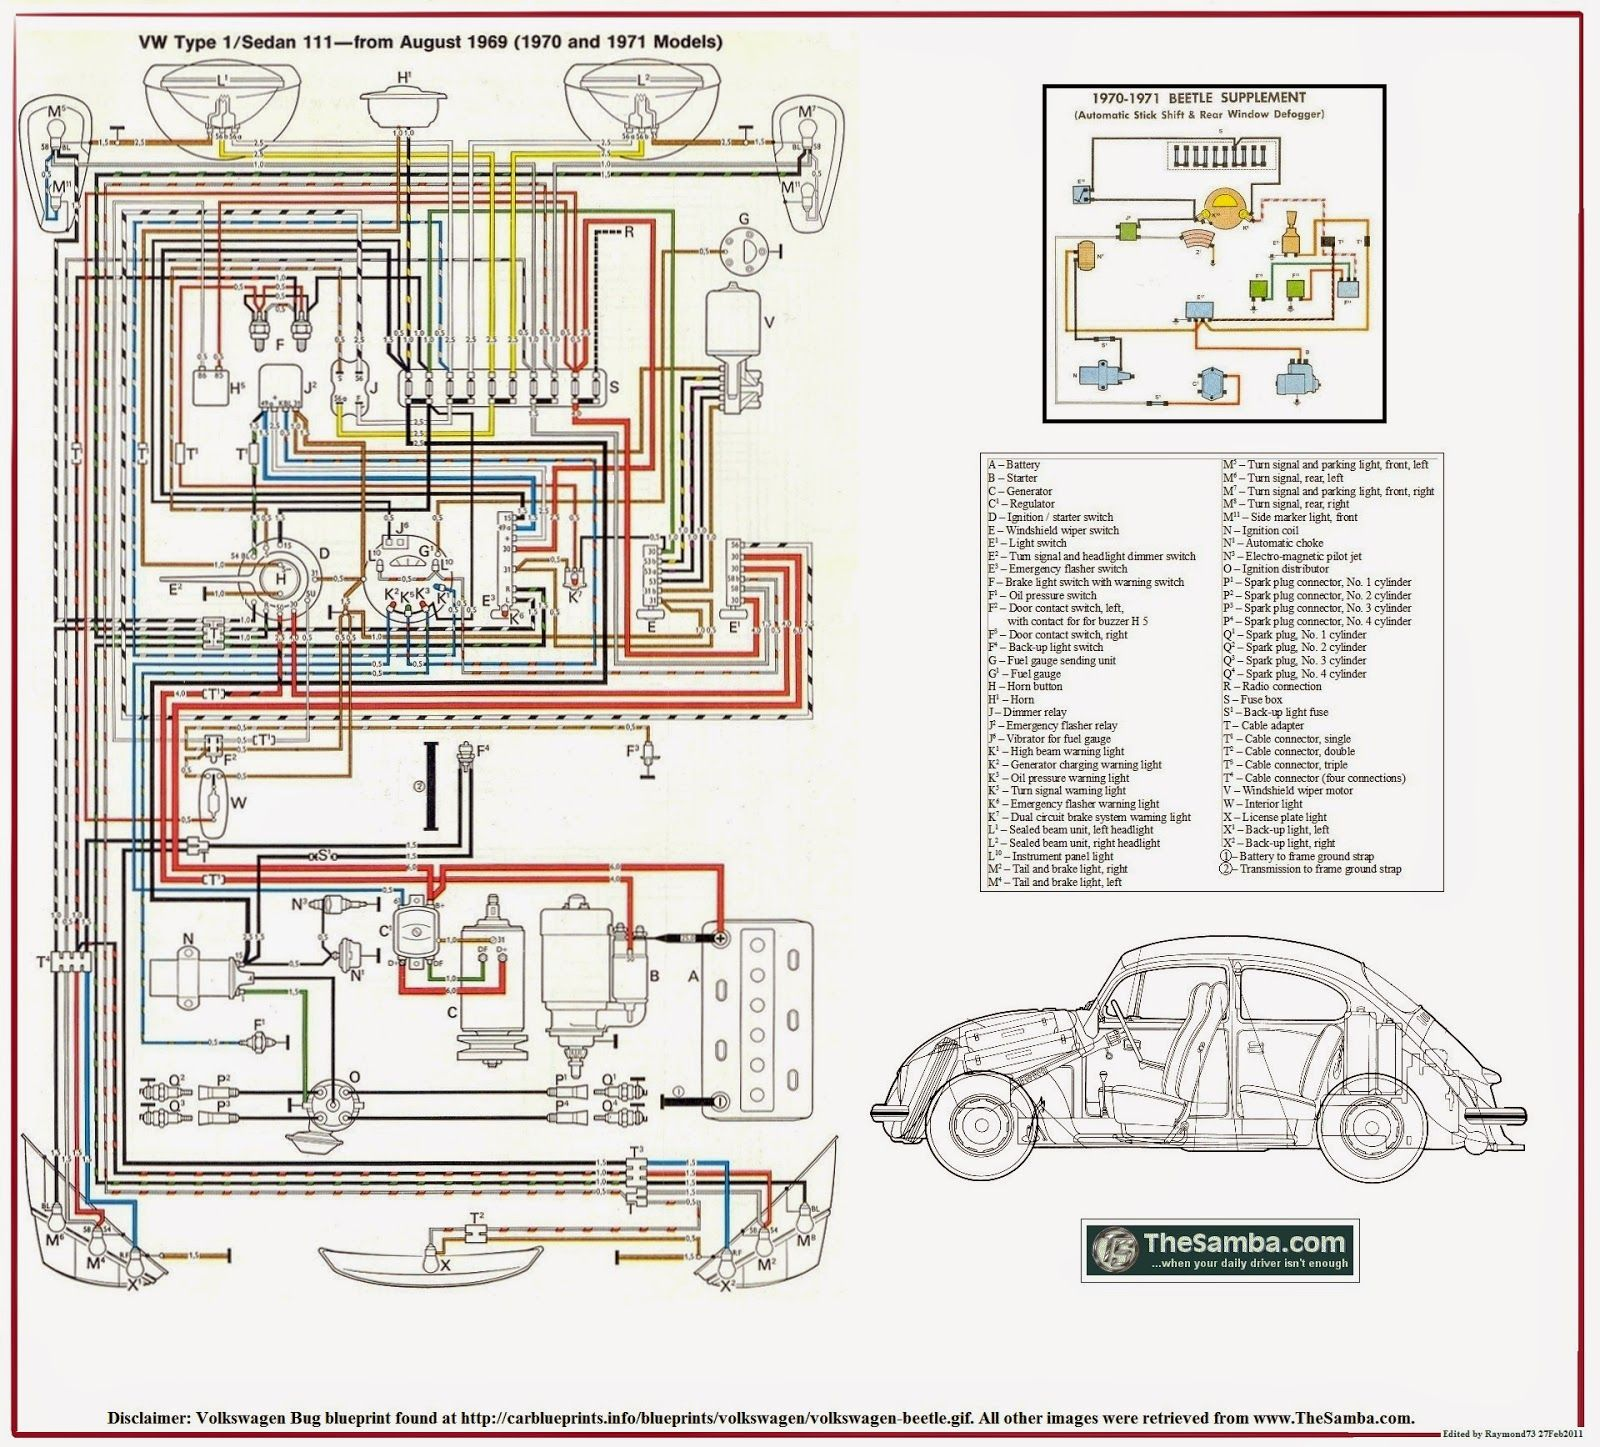 c42f7e50c6cd2df691326f8c1e5c6e97 urbi et orbi my bucket list journals volkswagen (vw) beetle 2001 VW Beetle Engine Diagram at fashall.co